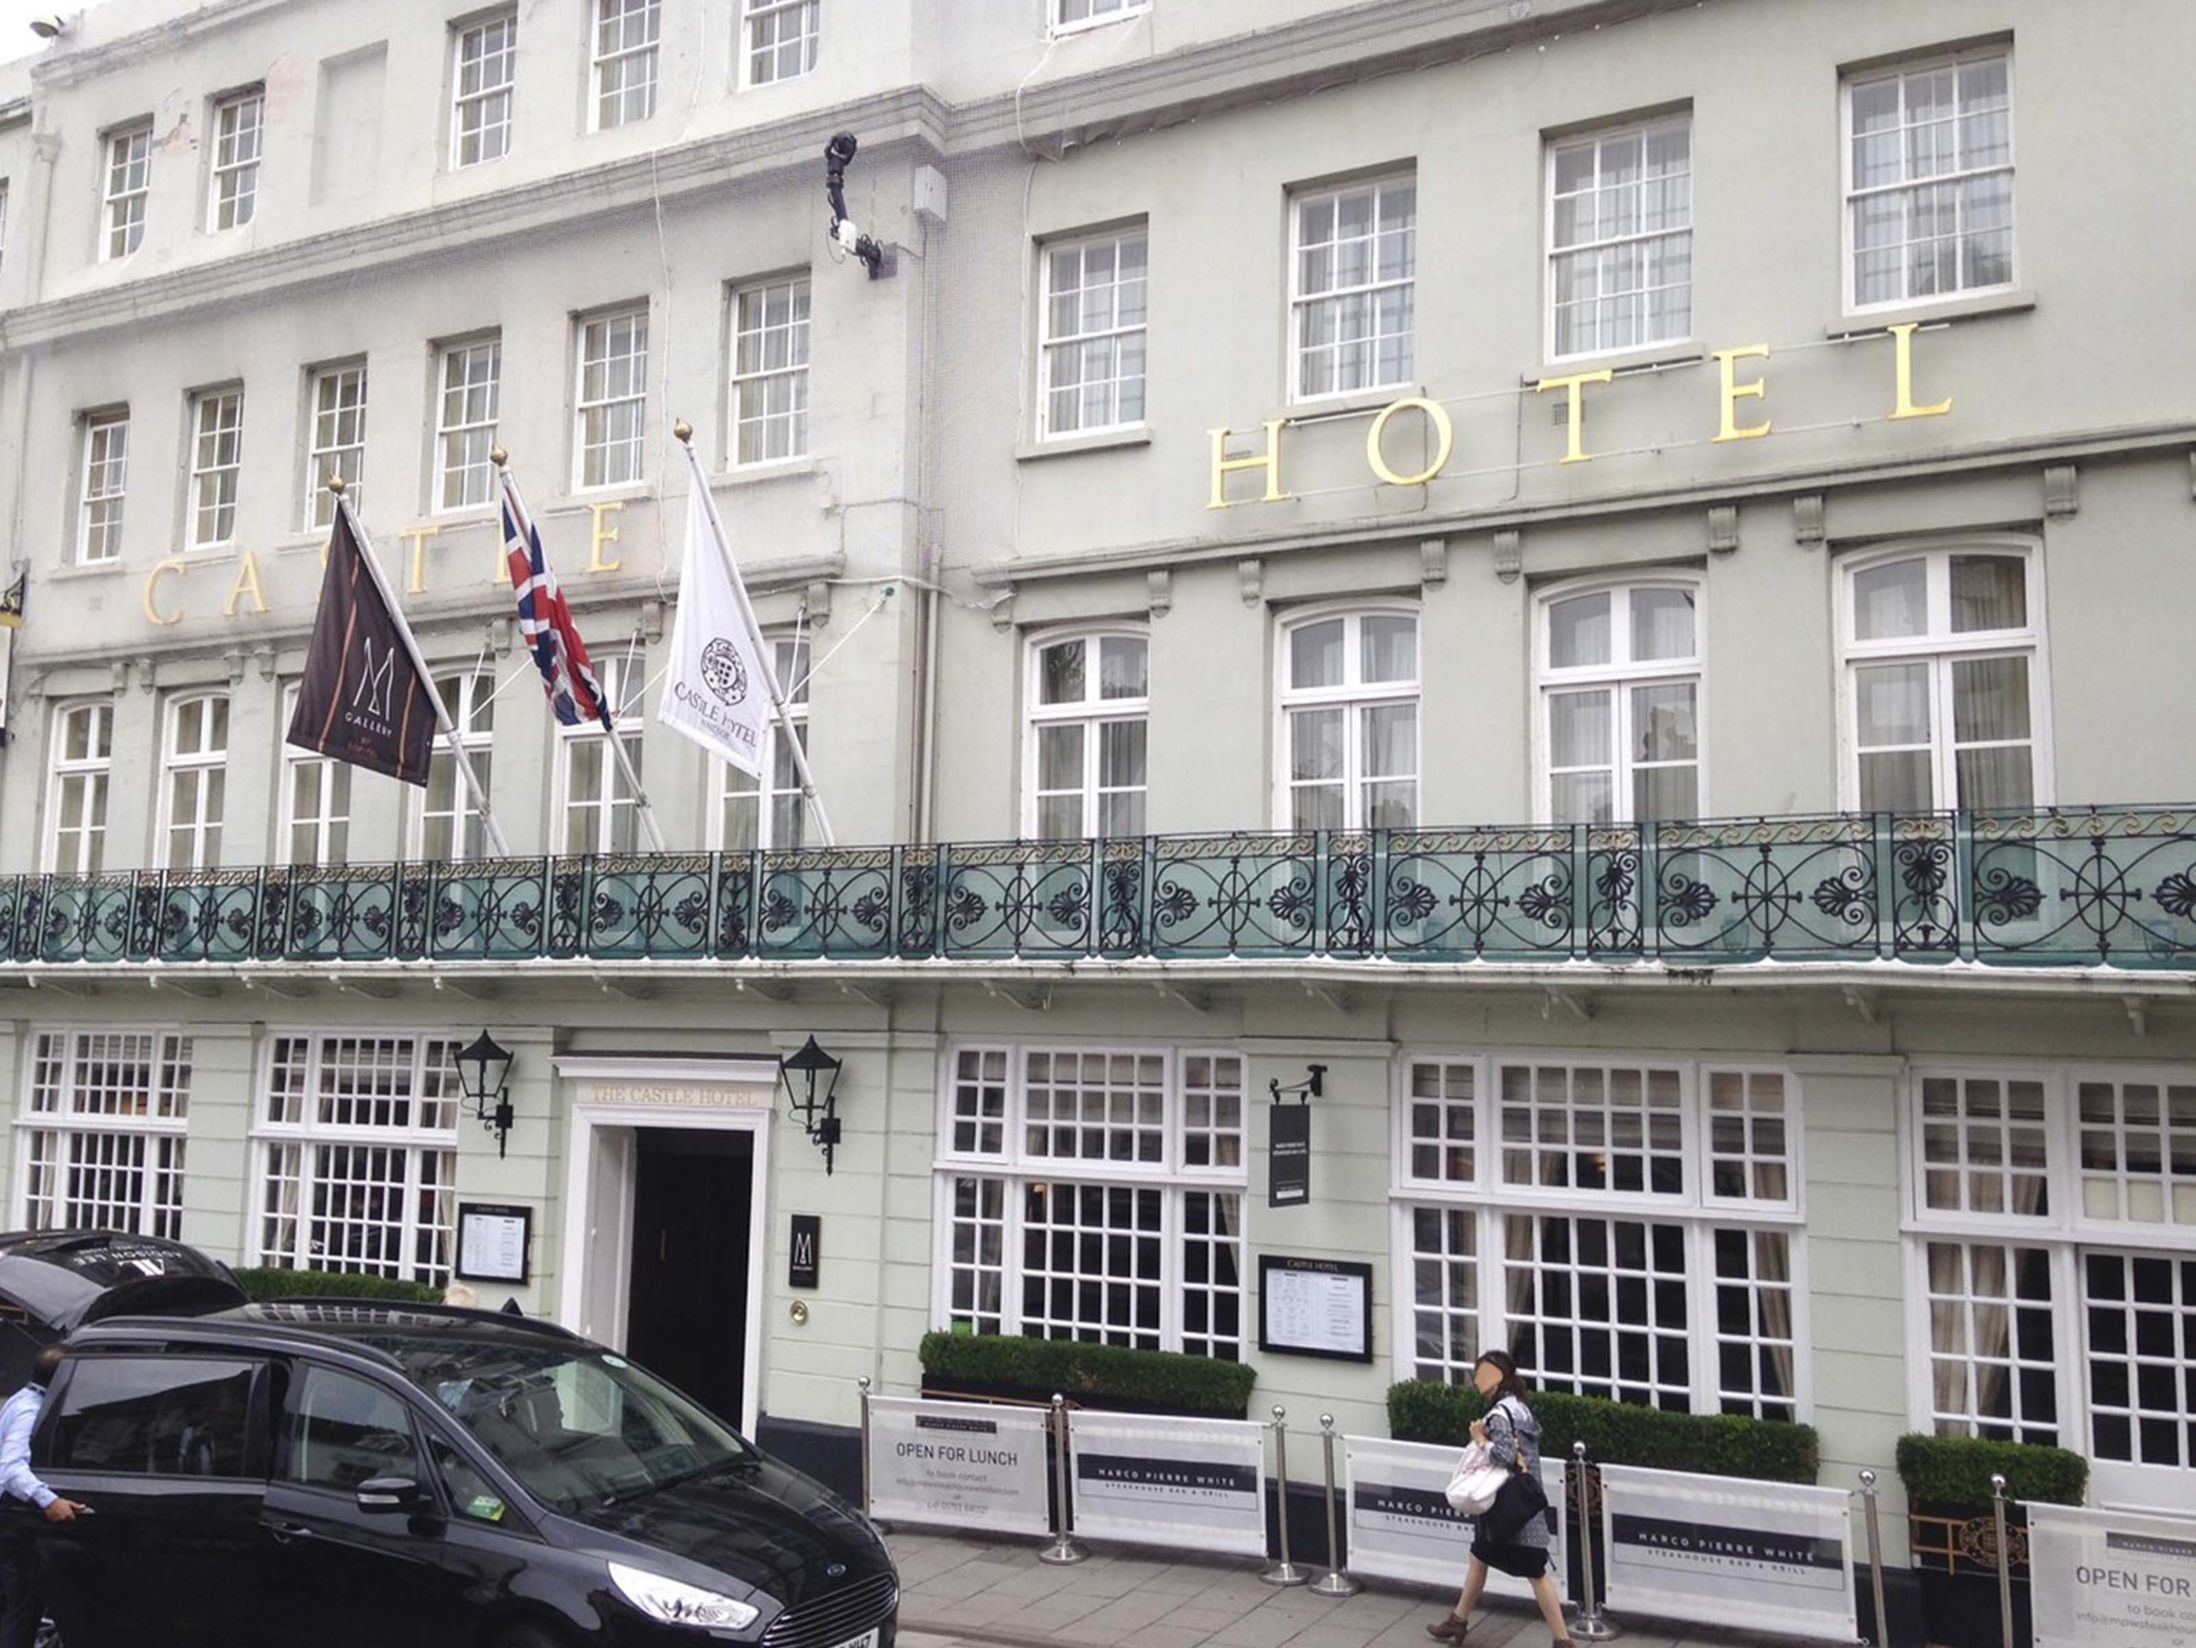 Cheap Hotels in Windsor - Castle Hotel